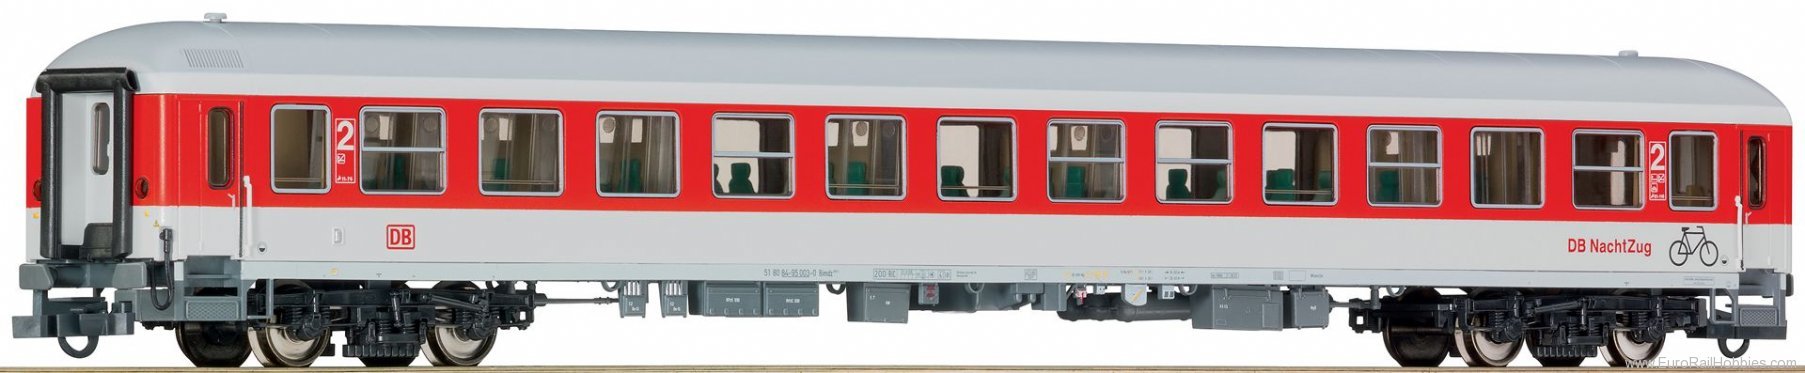 Roco 64423 DB AG Bimdz Express Train Passenger car 2nd c